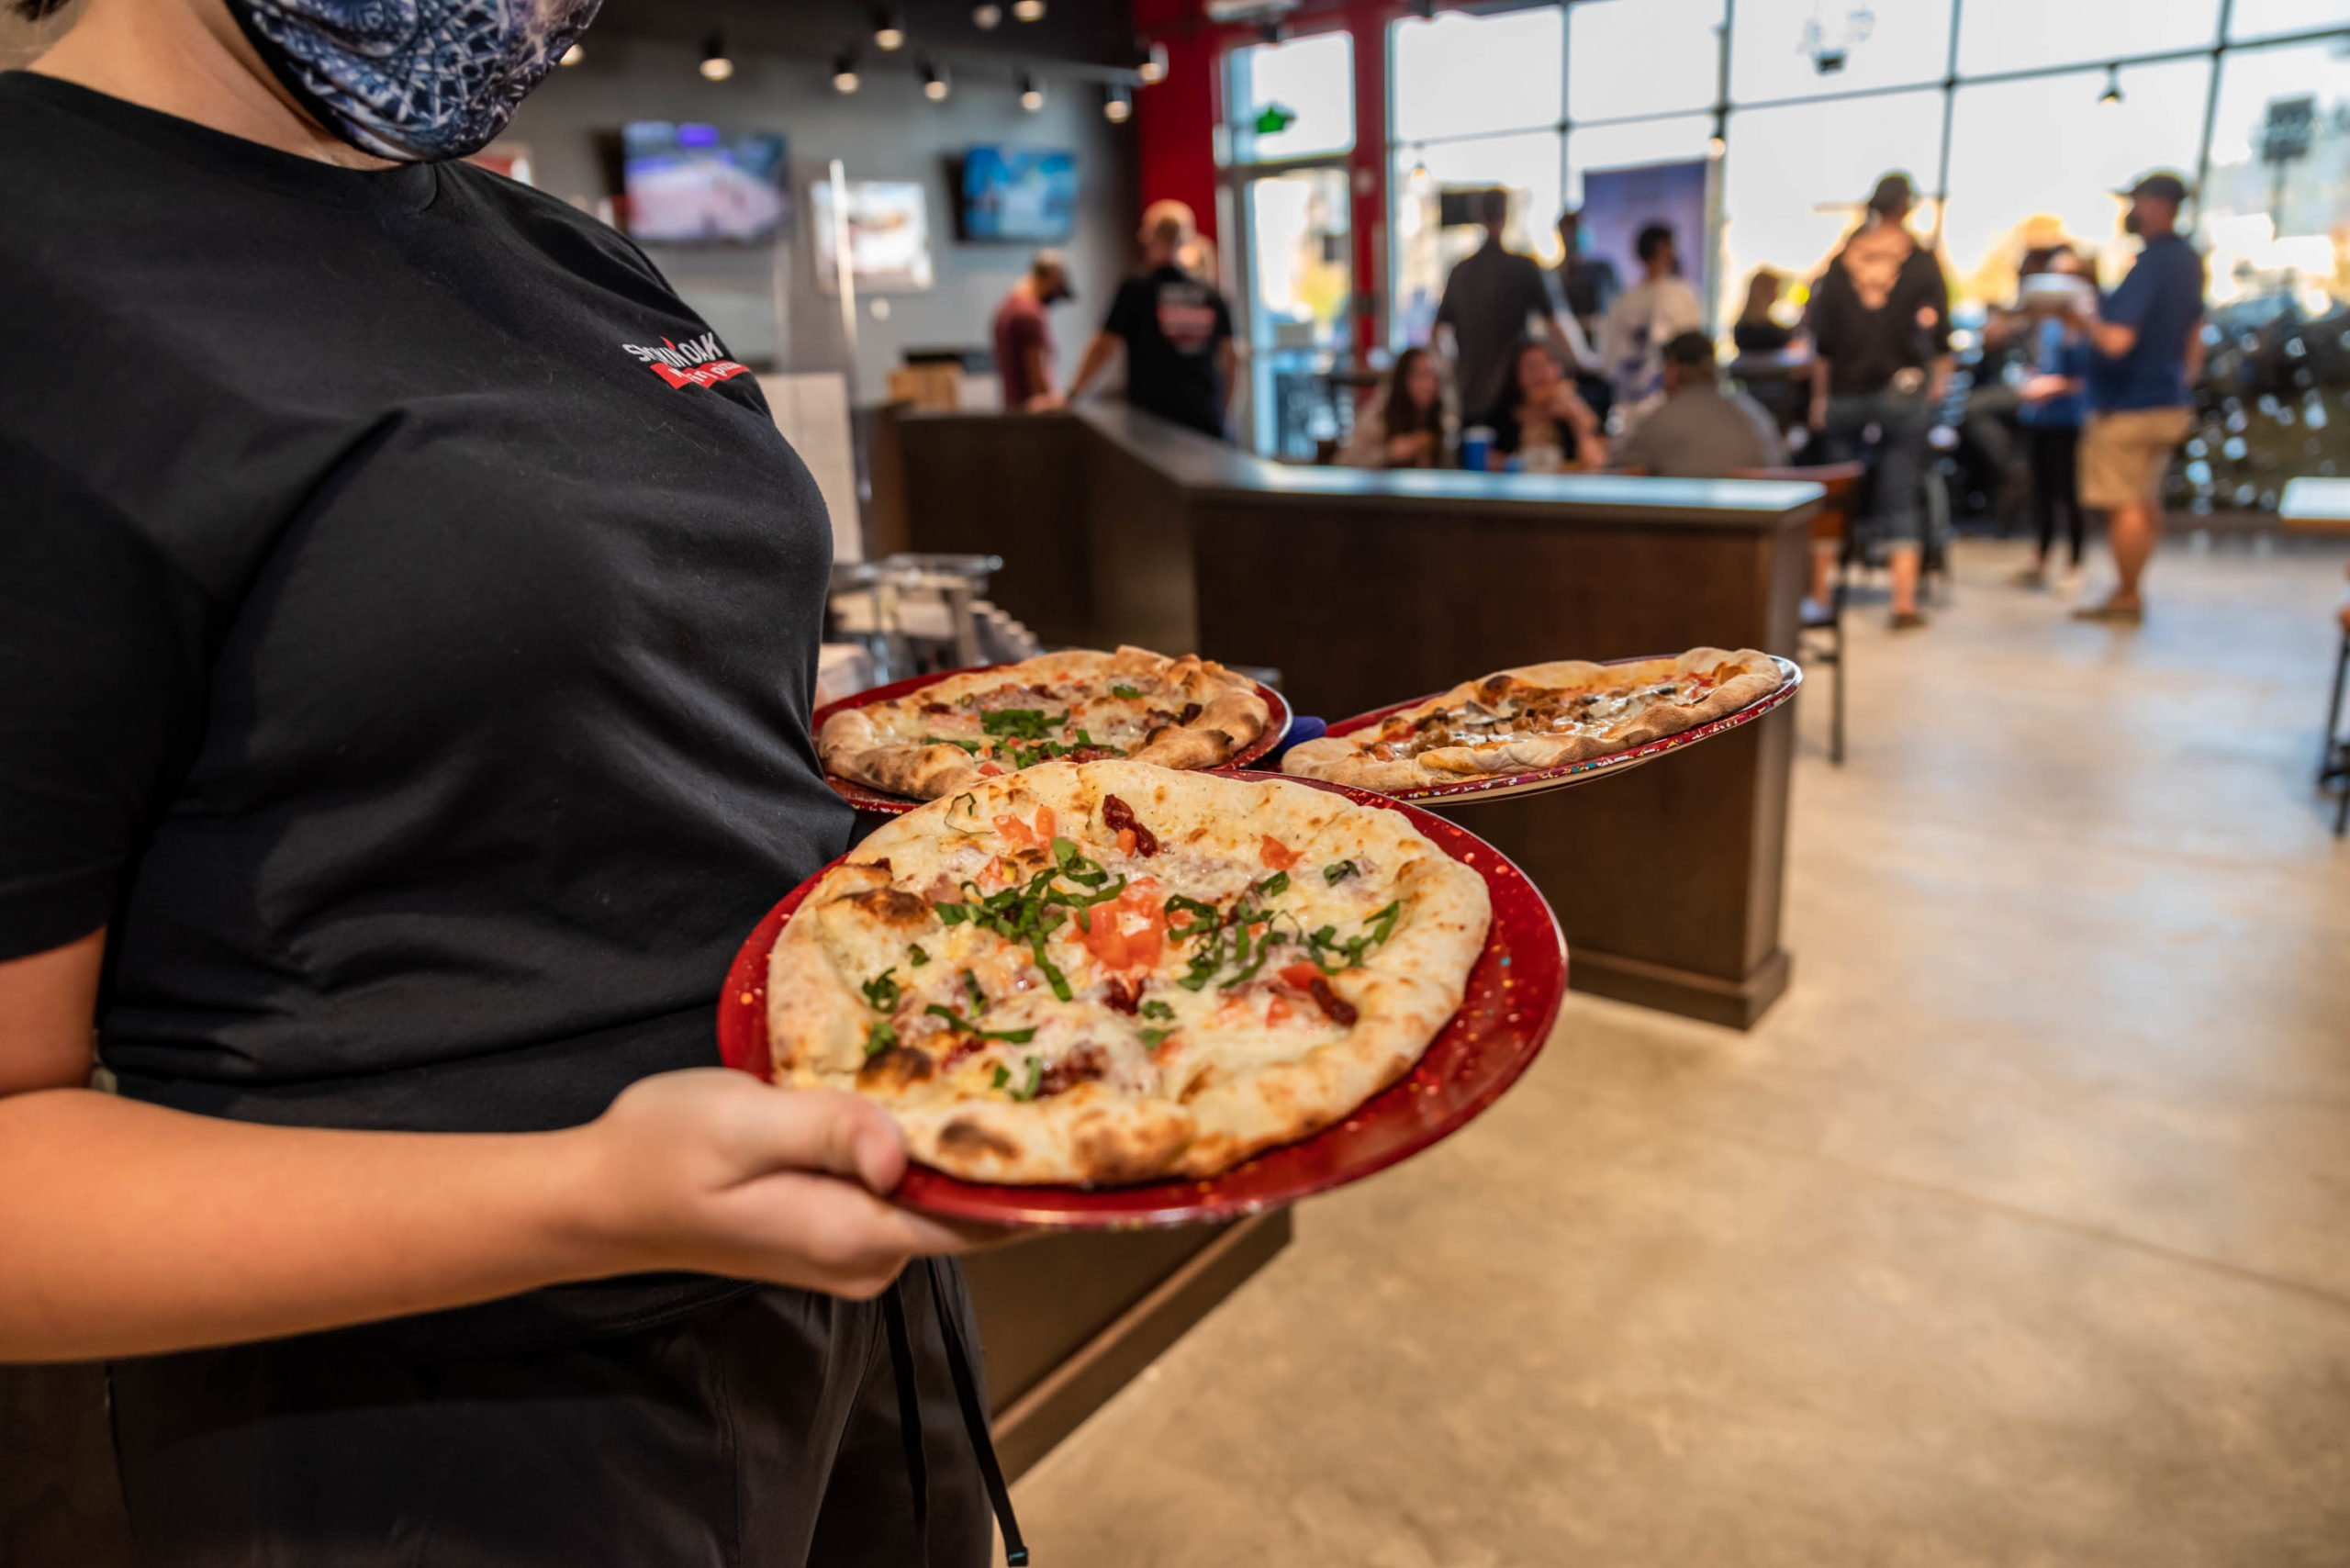 Smokin' Oak Wood-Fired Pizza Expands into Greater Tampa Bay Market with Honu Life Enterprises, Inc.